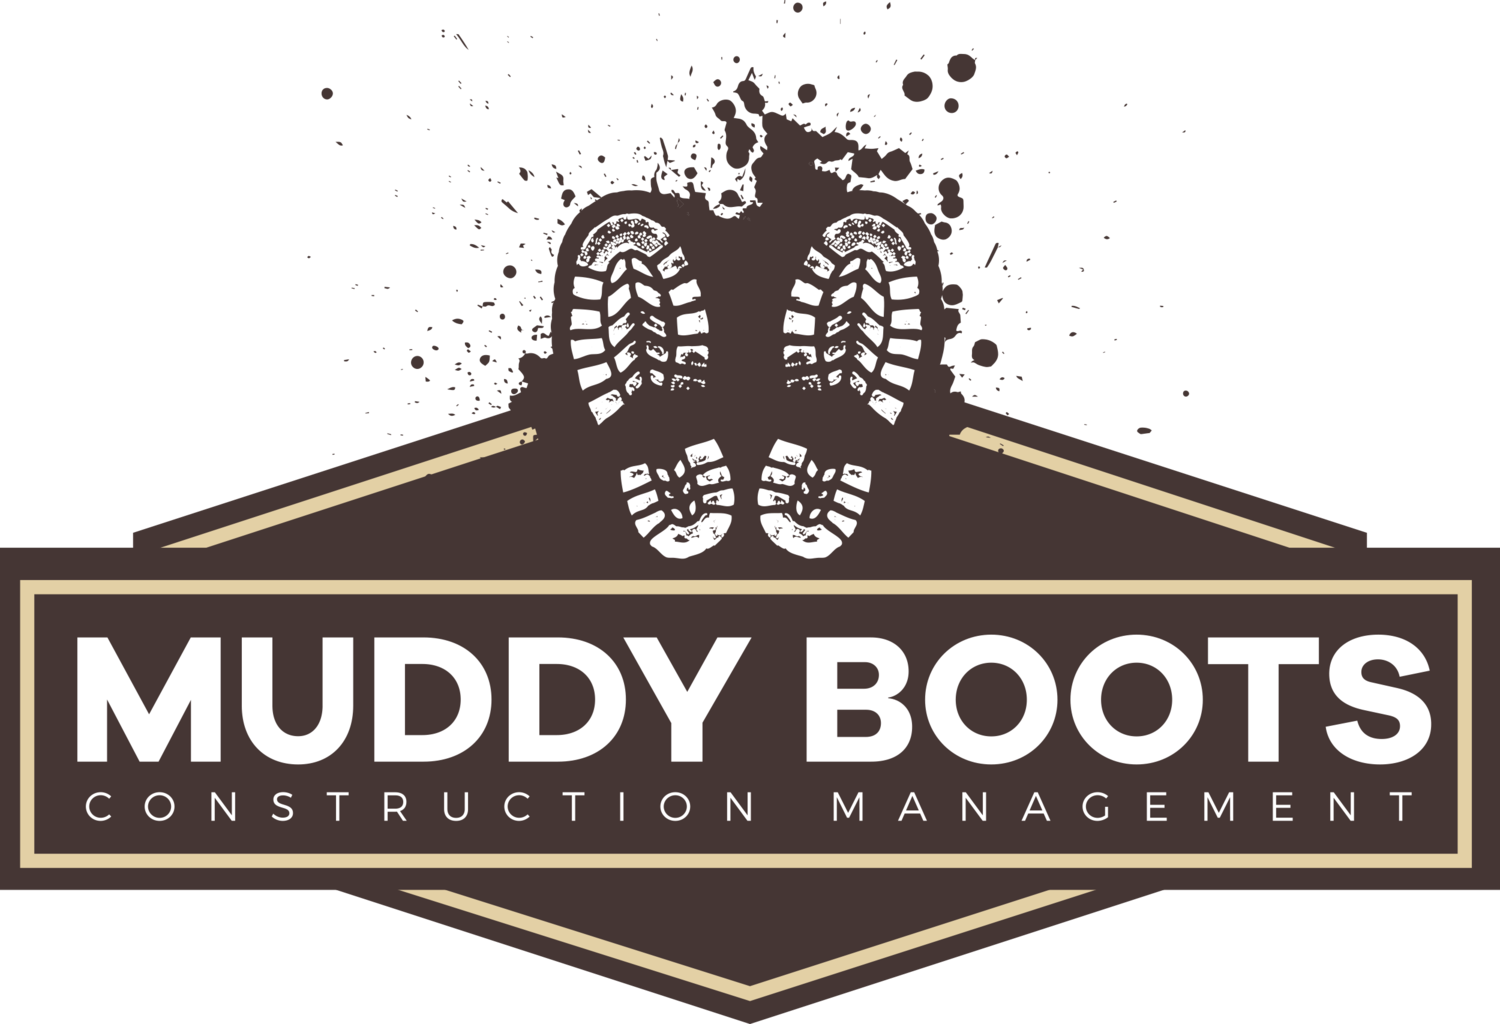 About Muddy Boots Construction Management — Muddy Boots Construction.